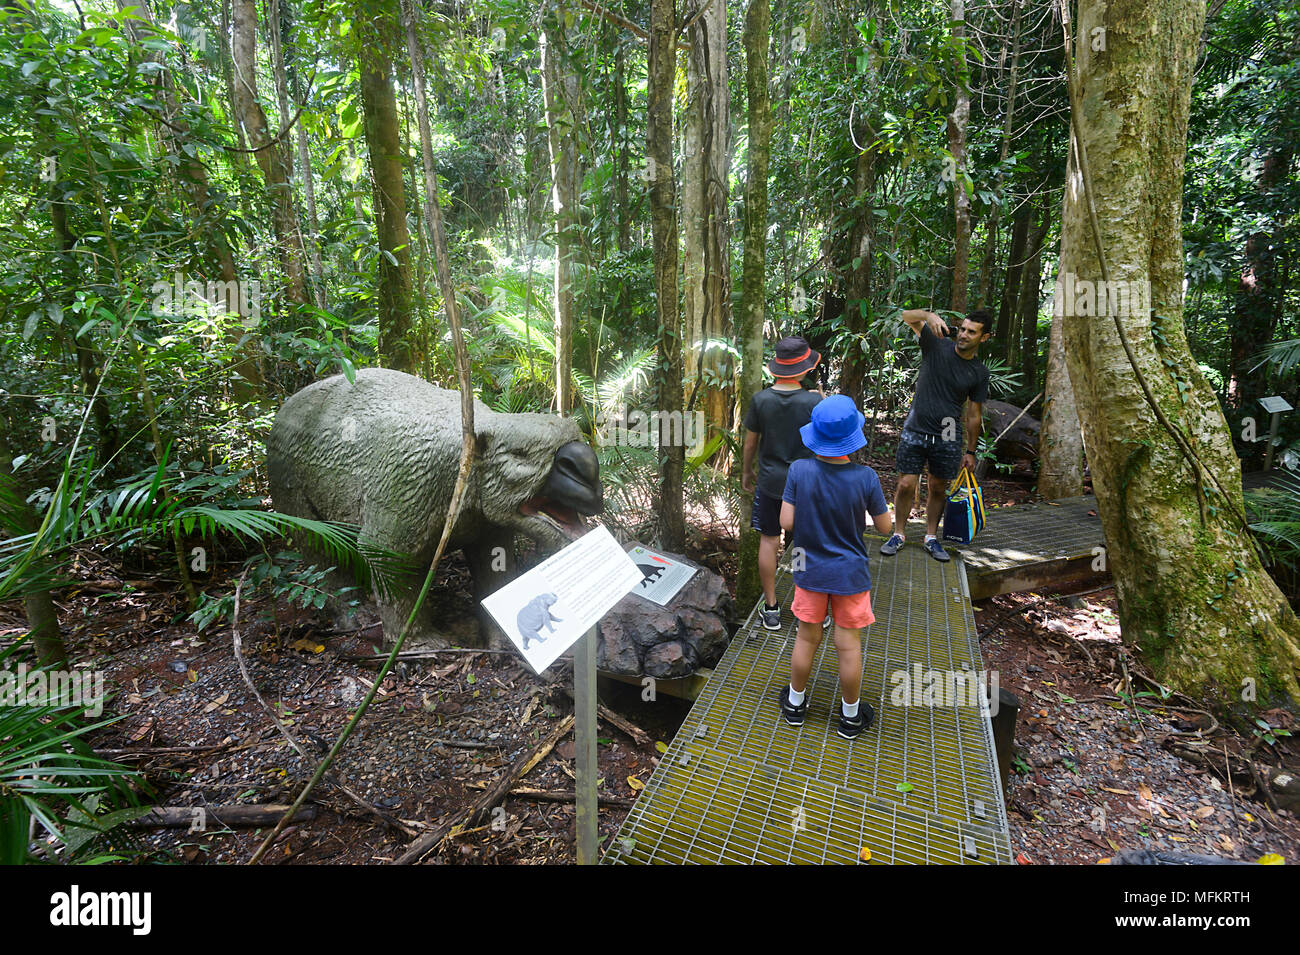 Family visiting the Jurassic Forest, Daintree Discovery Centre, Daintree National Park, Far North Queensland, FNQ, QLD, Australia - Stock Image